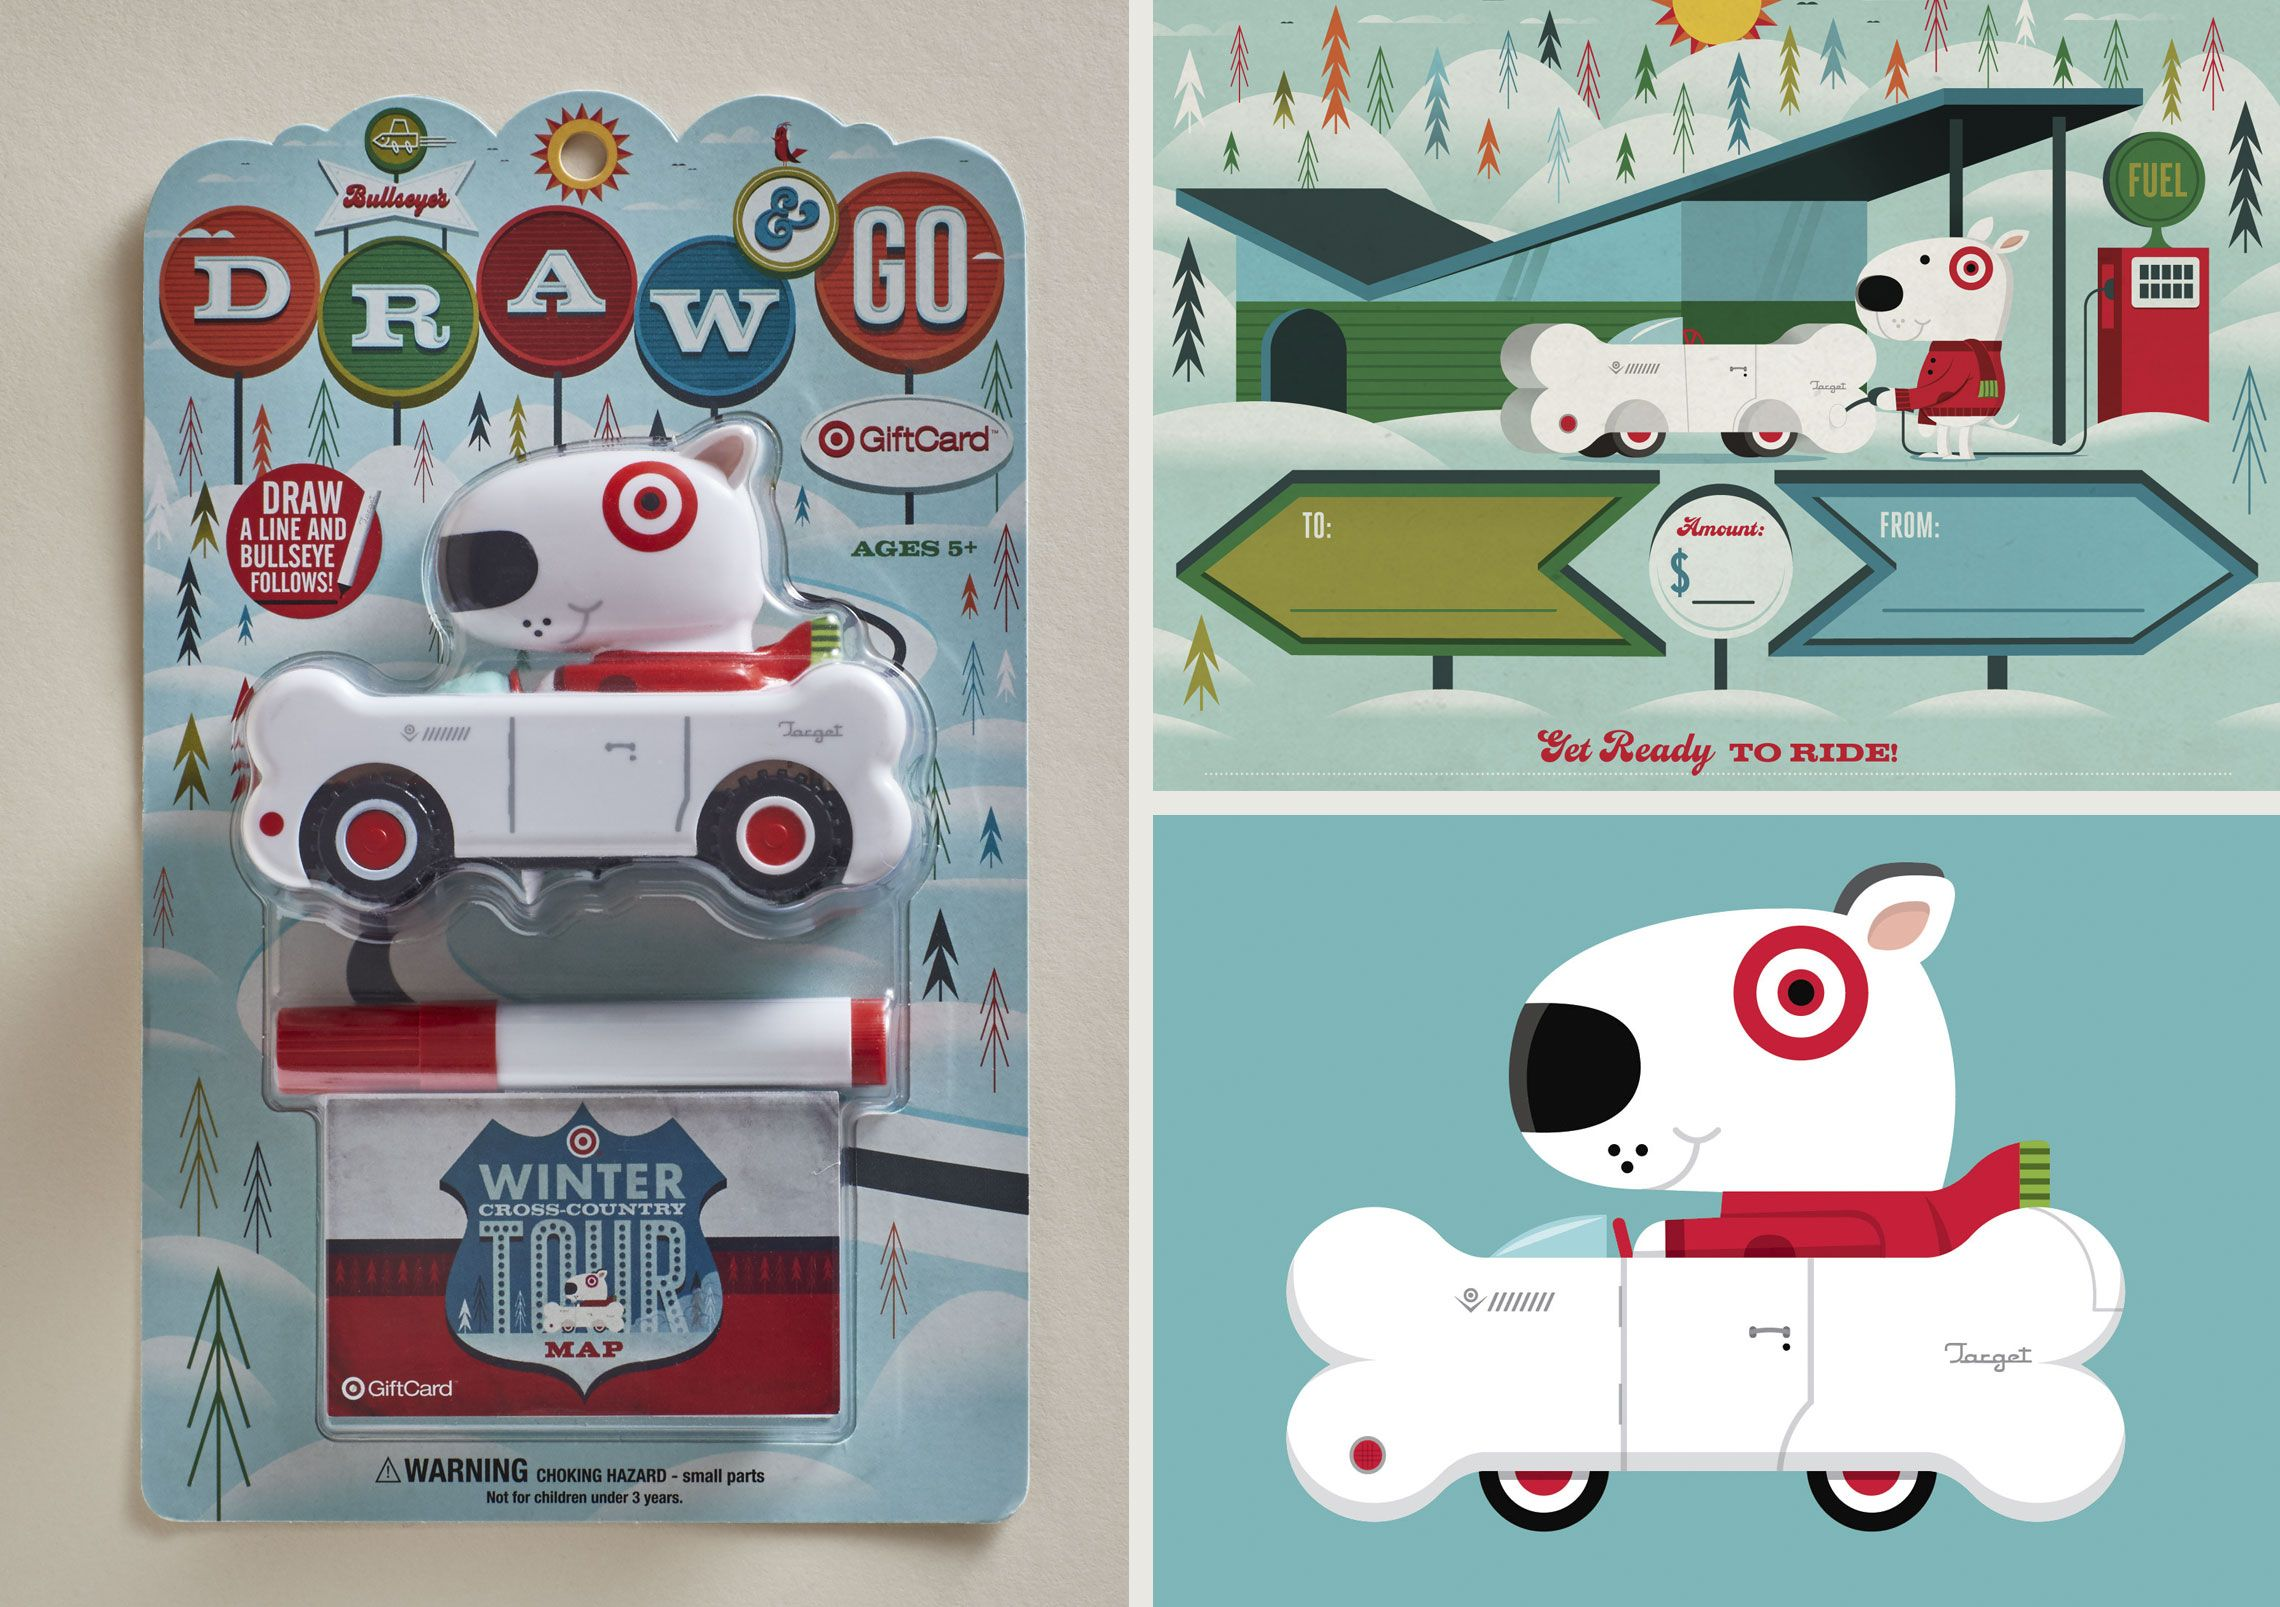 Target Gift Card New In Package Bullseye Draw /& Go Toy